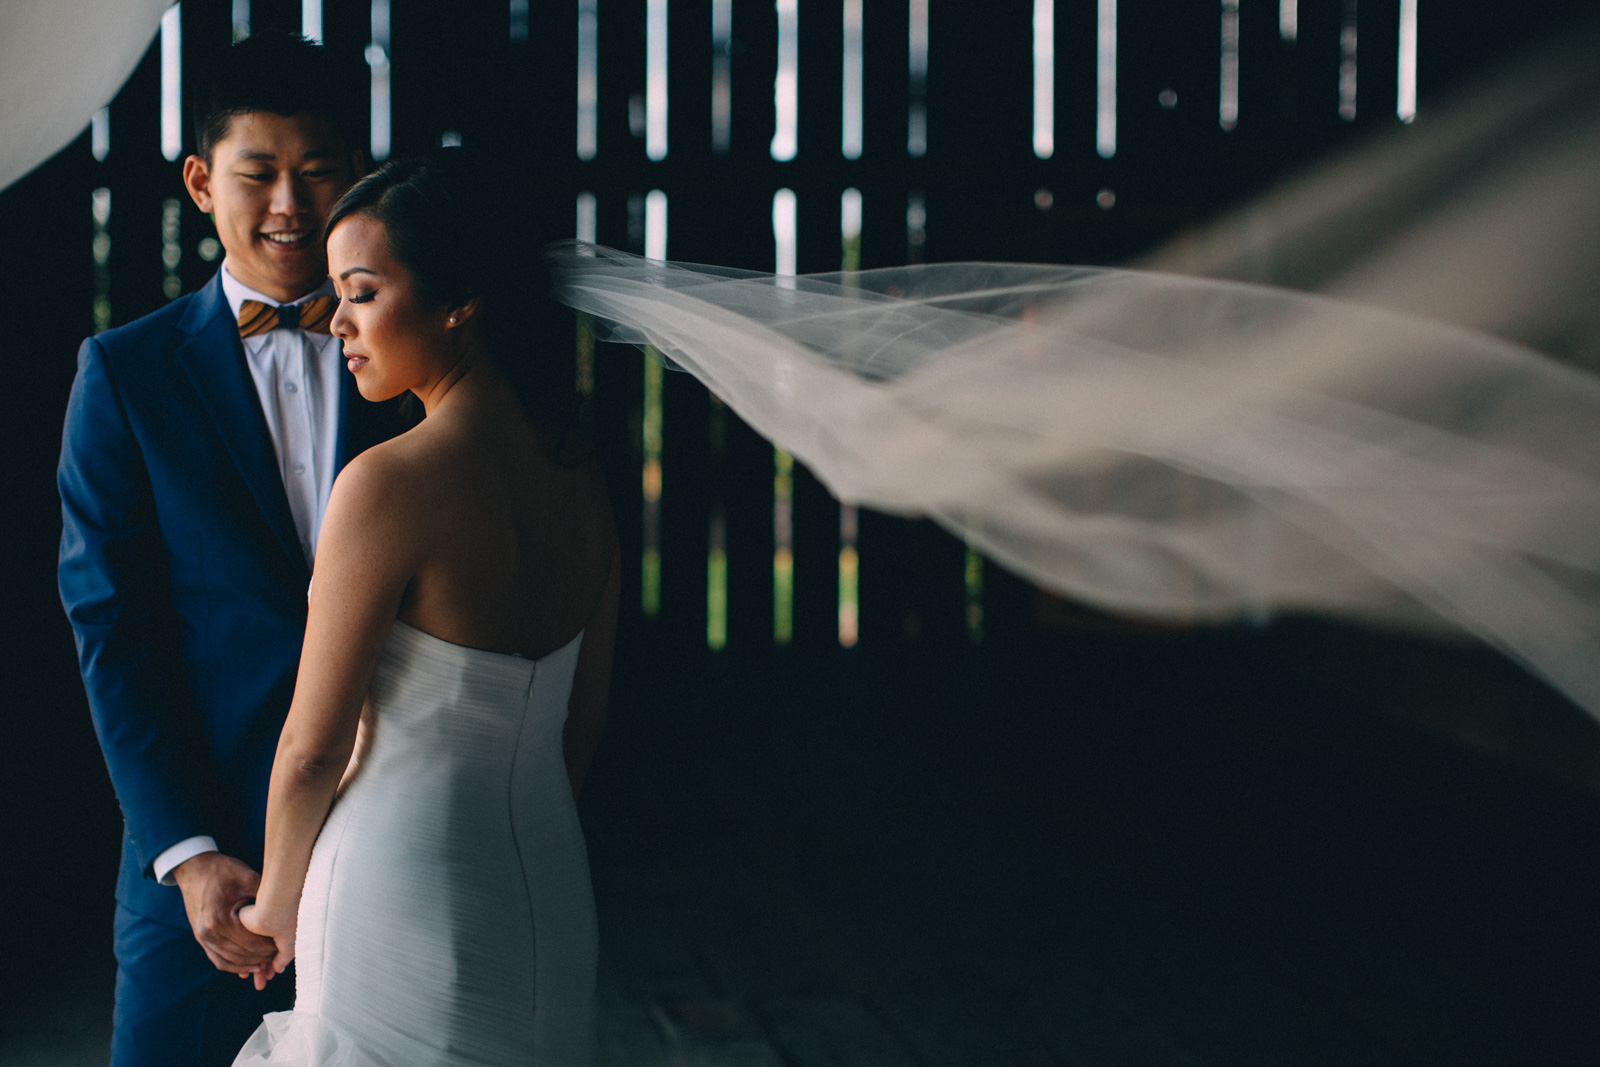 cambium-farms-wedding-photography-by-sam-wong-of-artanis-collective_22